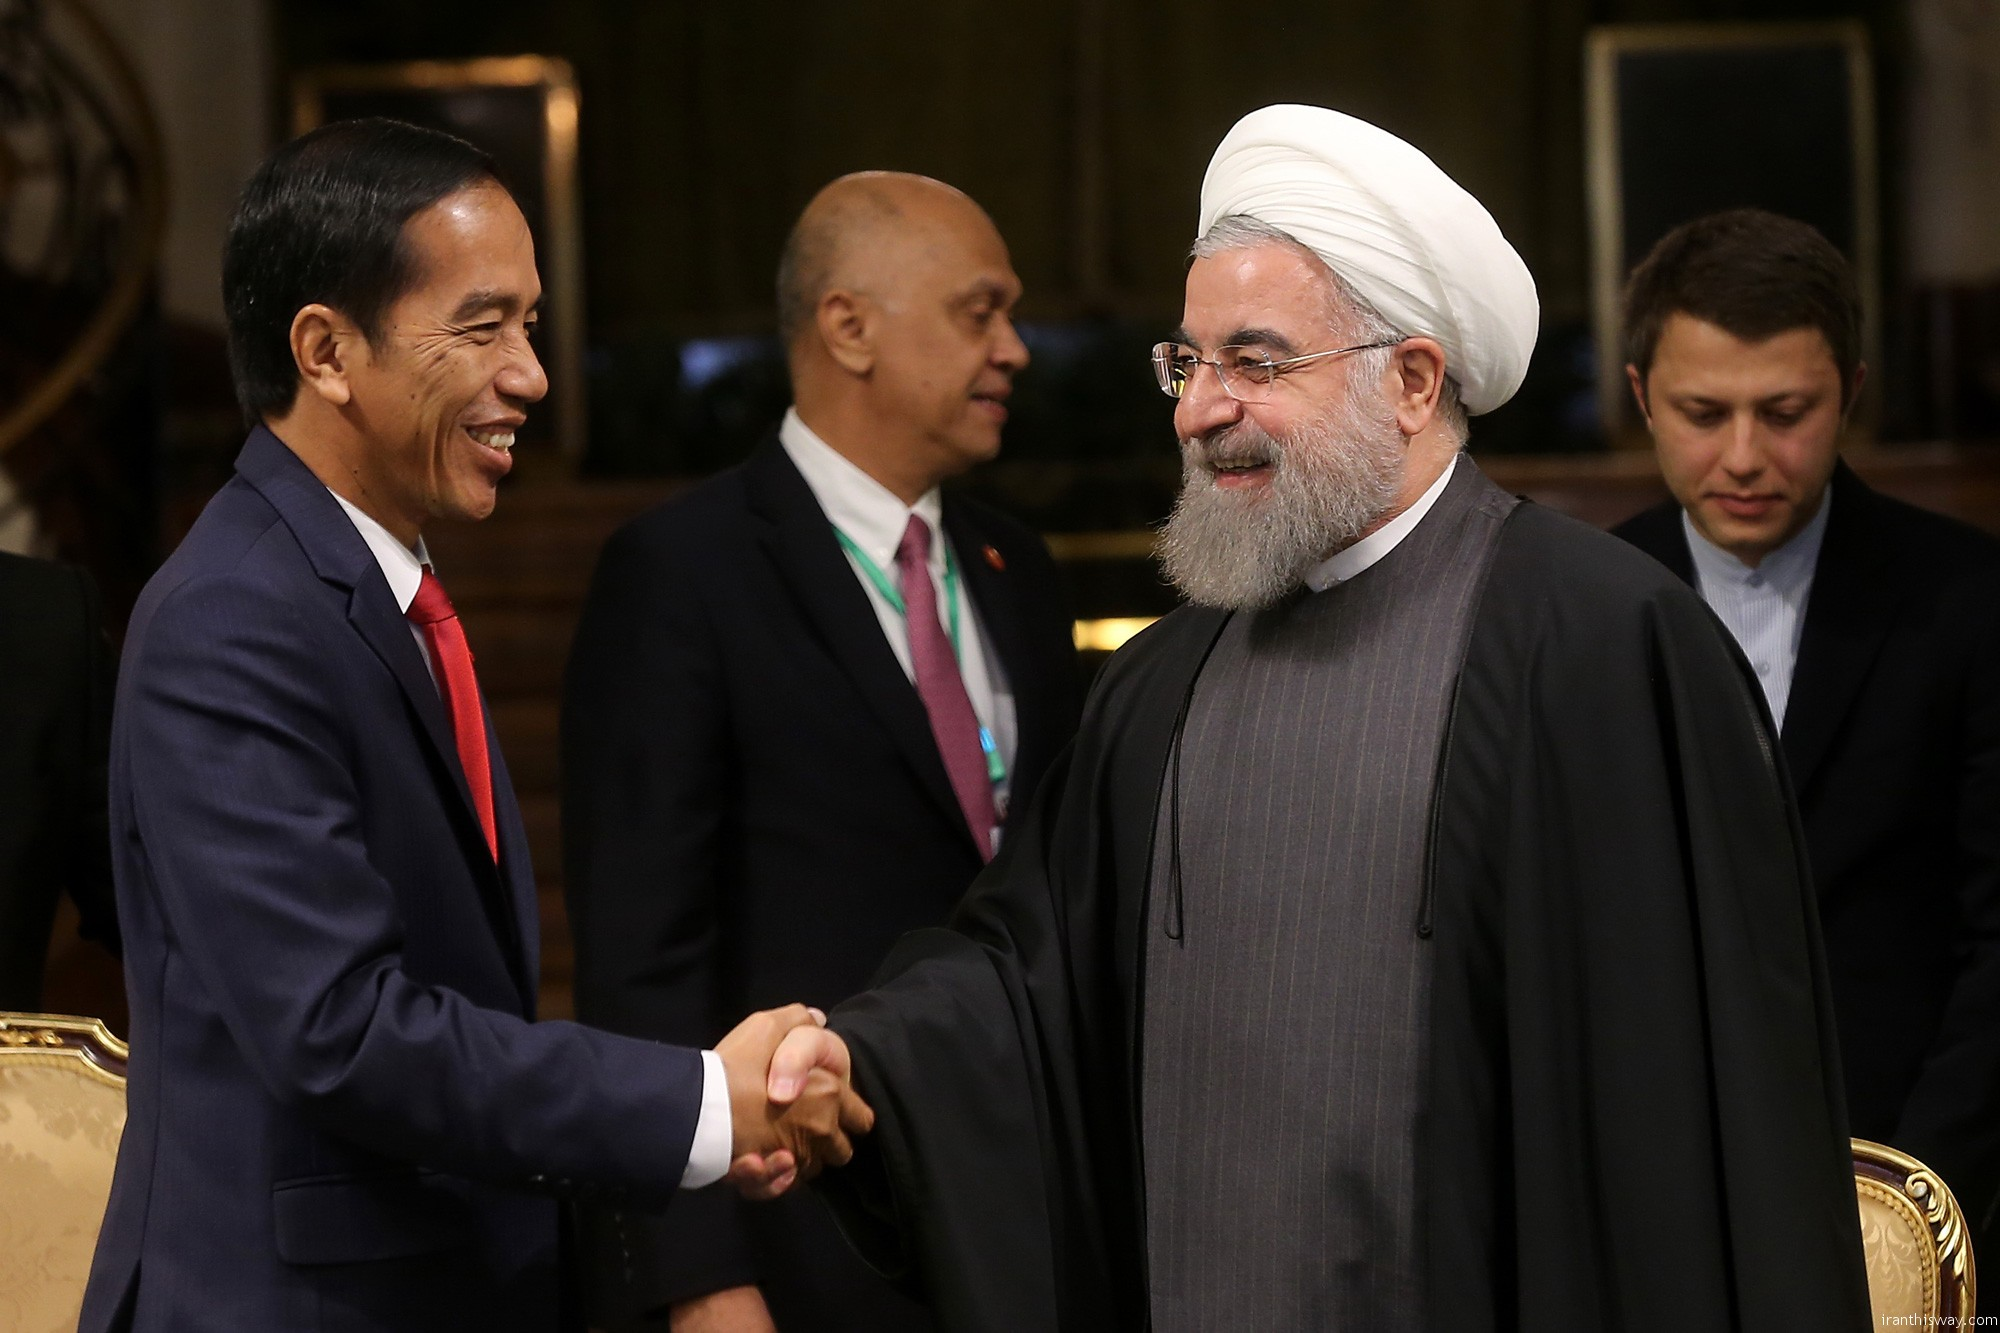 Indonesian President heading a high ranking politico-economic delegation arrived in Tehran on December 13 to confer with Iranian senior officials.